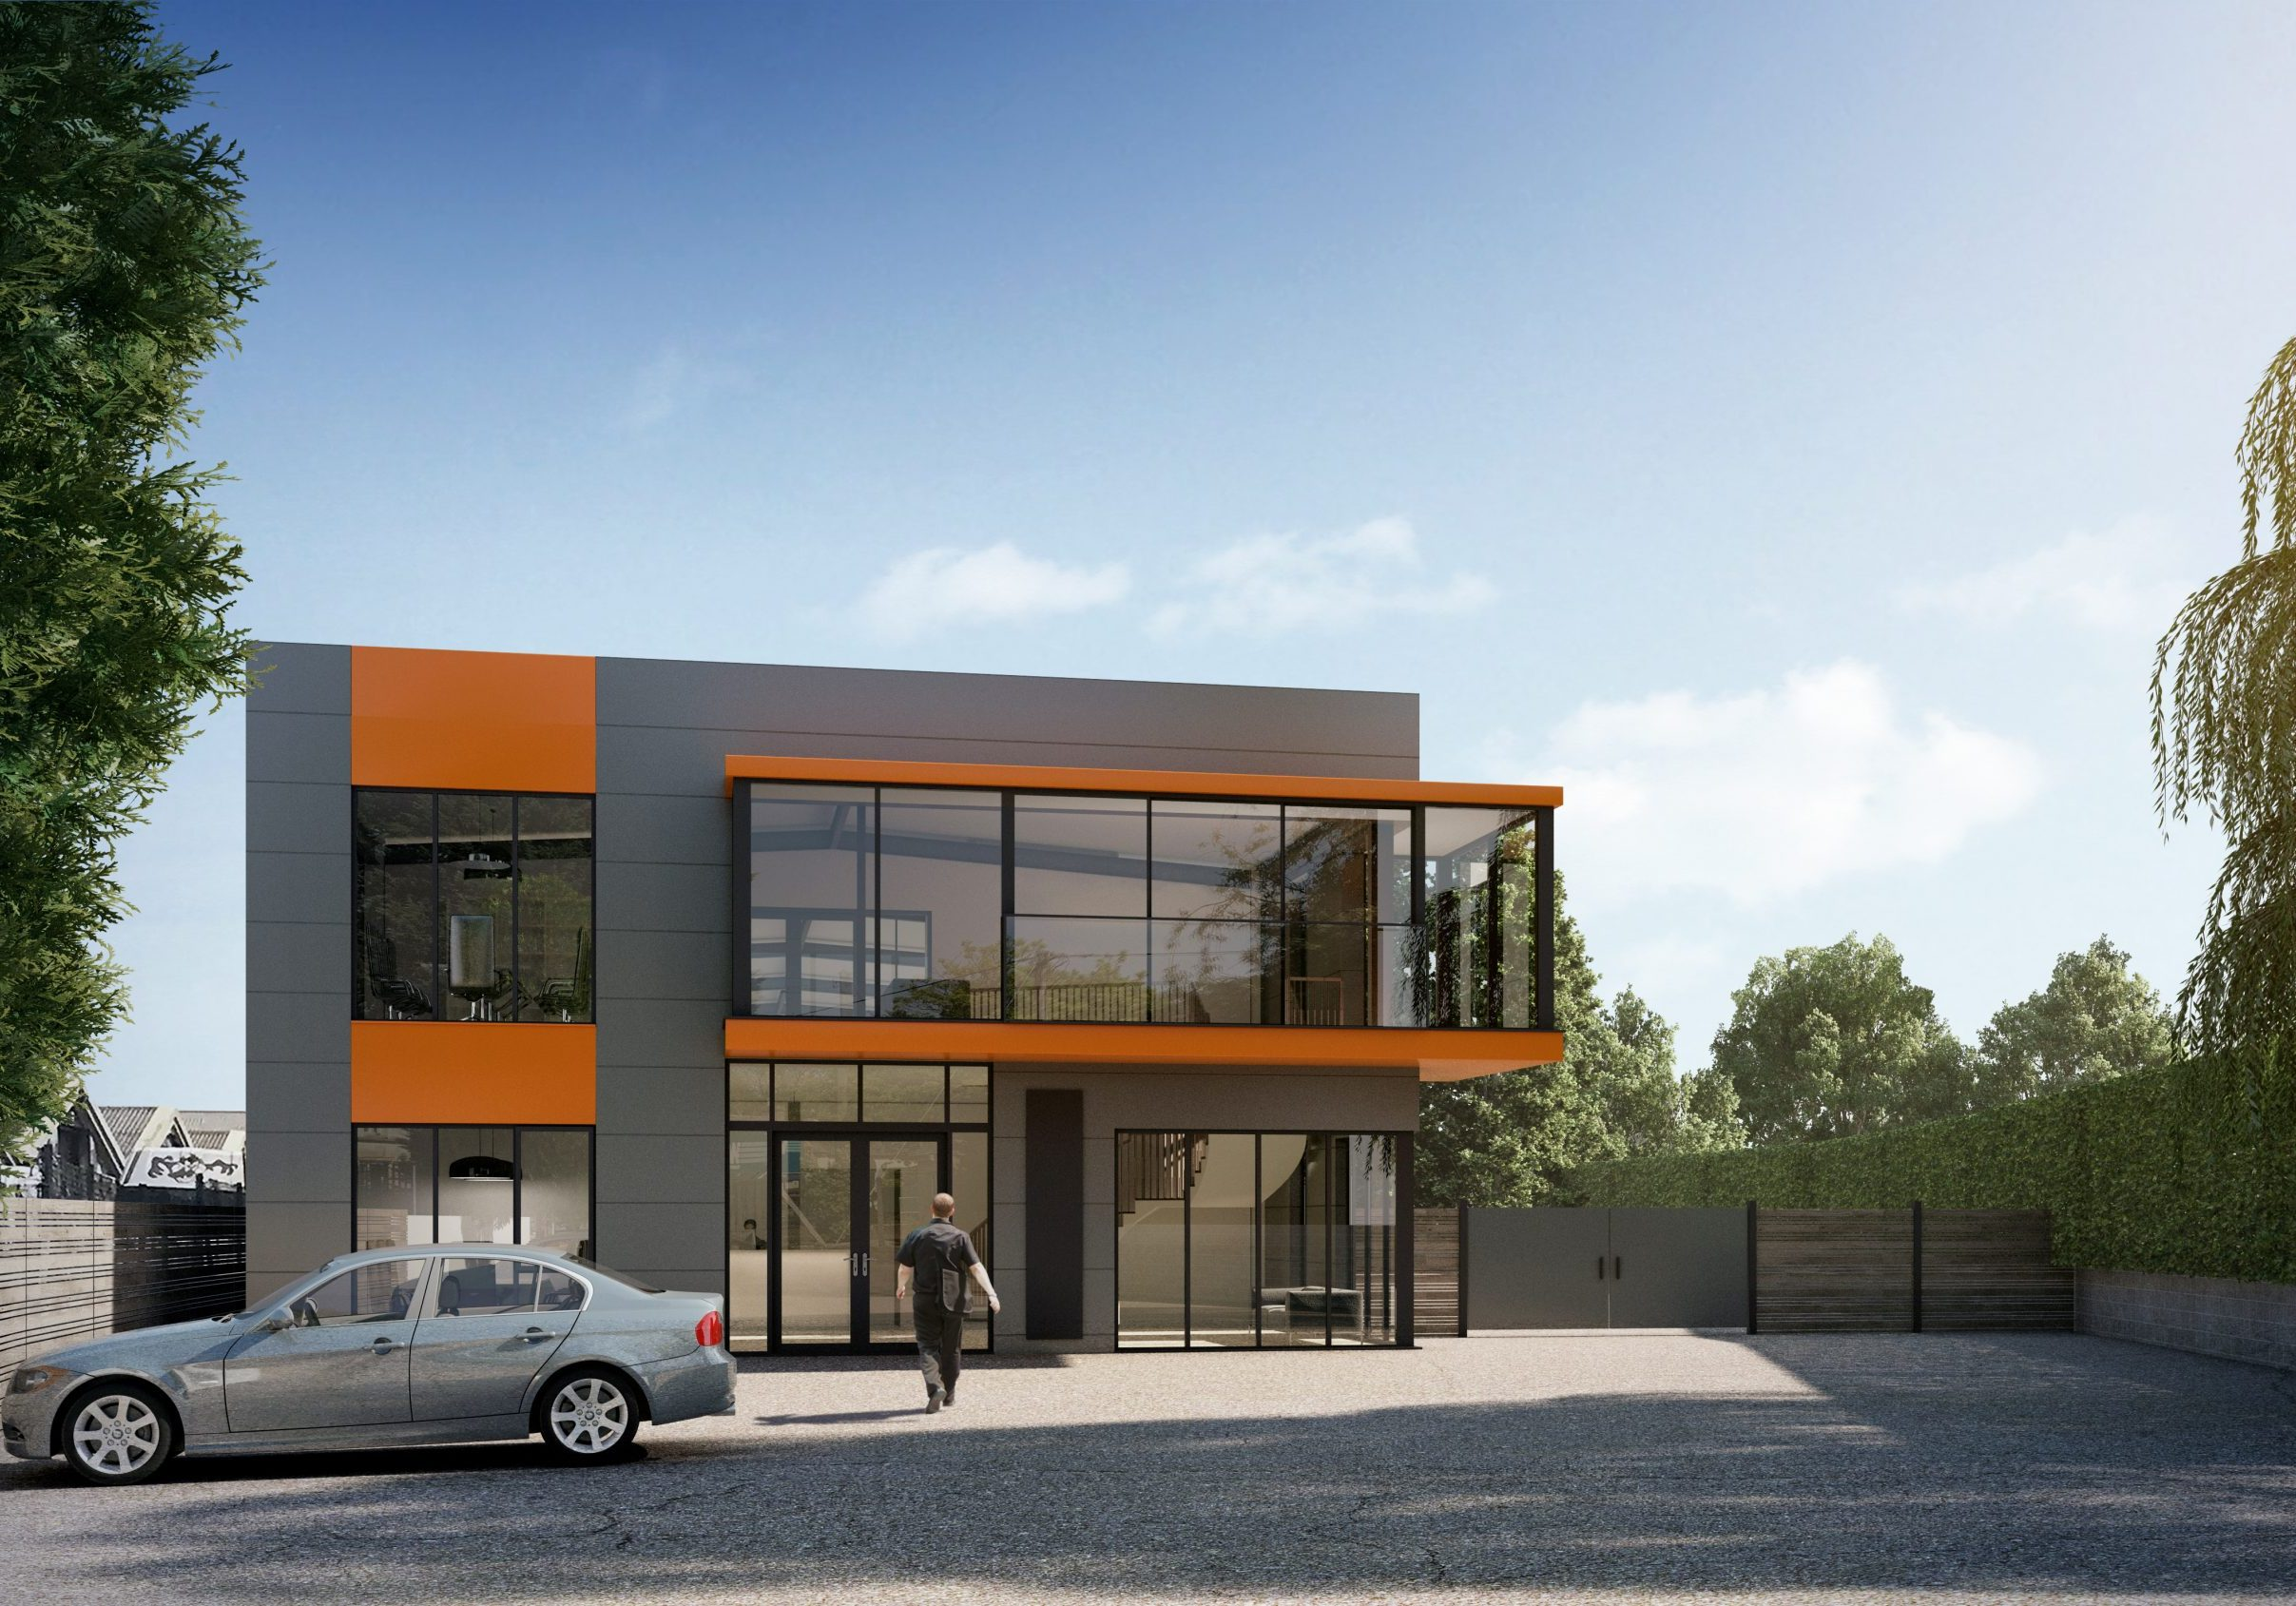 New head office and manufacturing facility, Andoversford